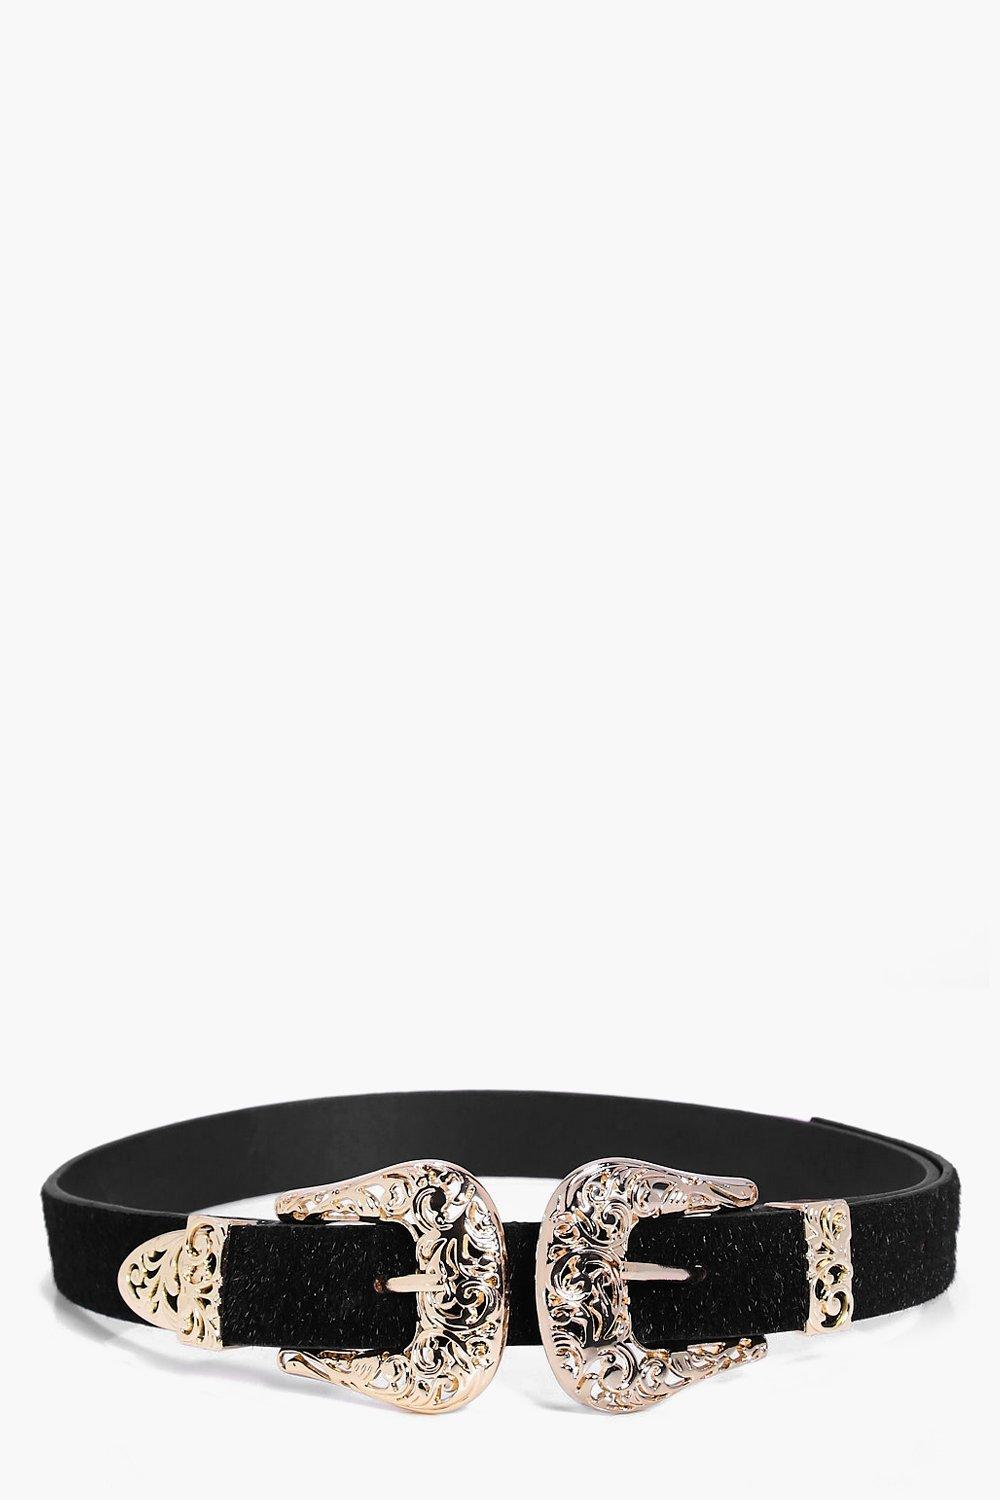 Filigree Double Buckle Faux Pony Belt - black - Pa